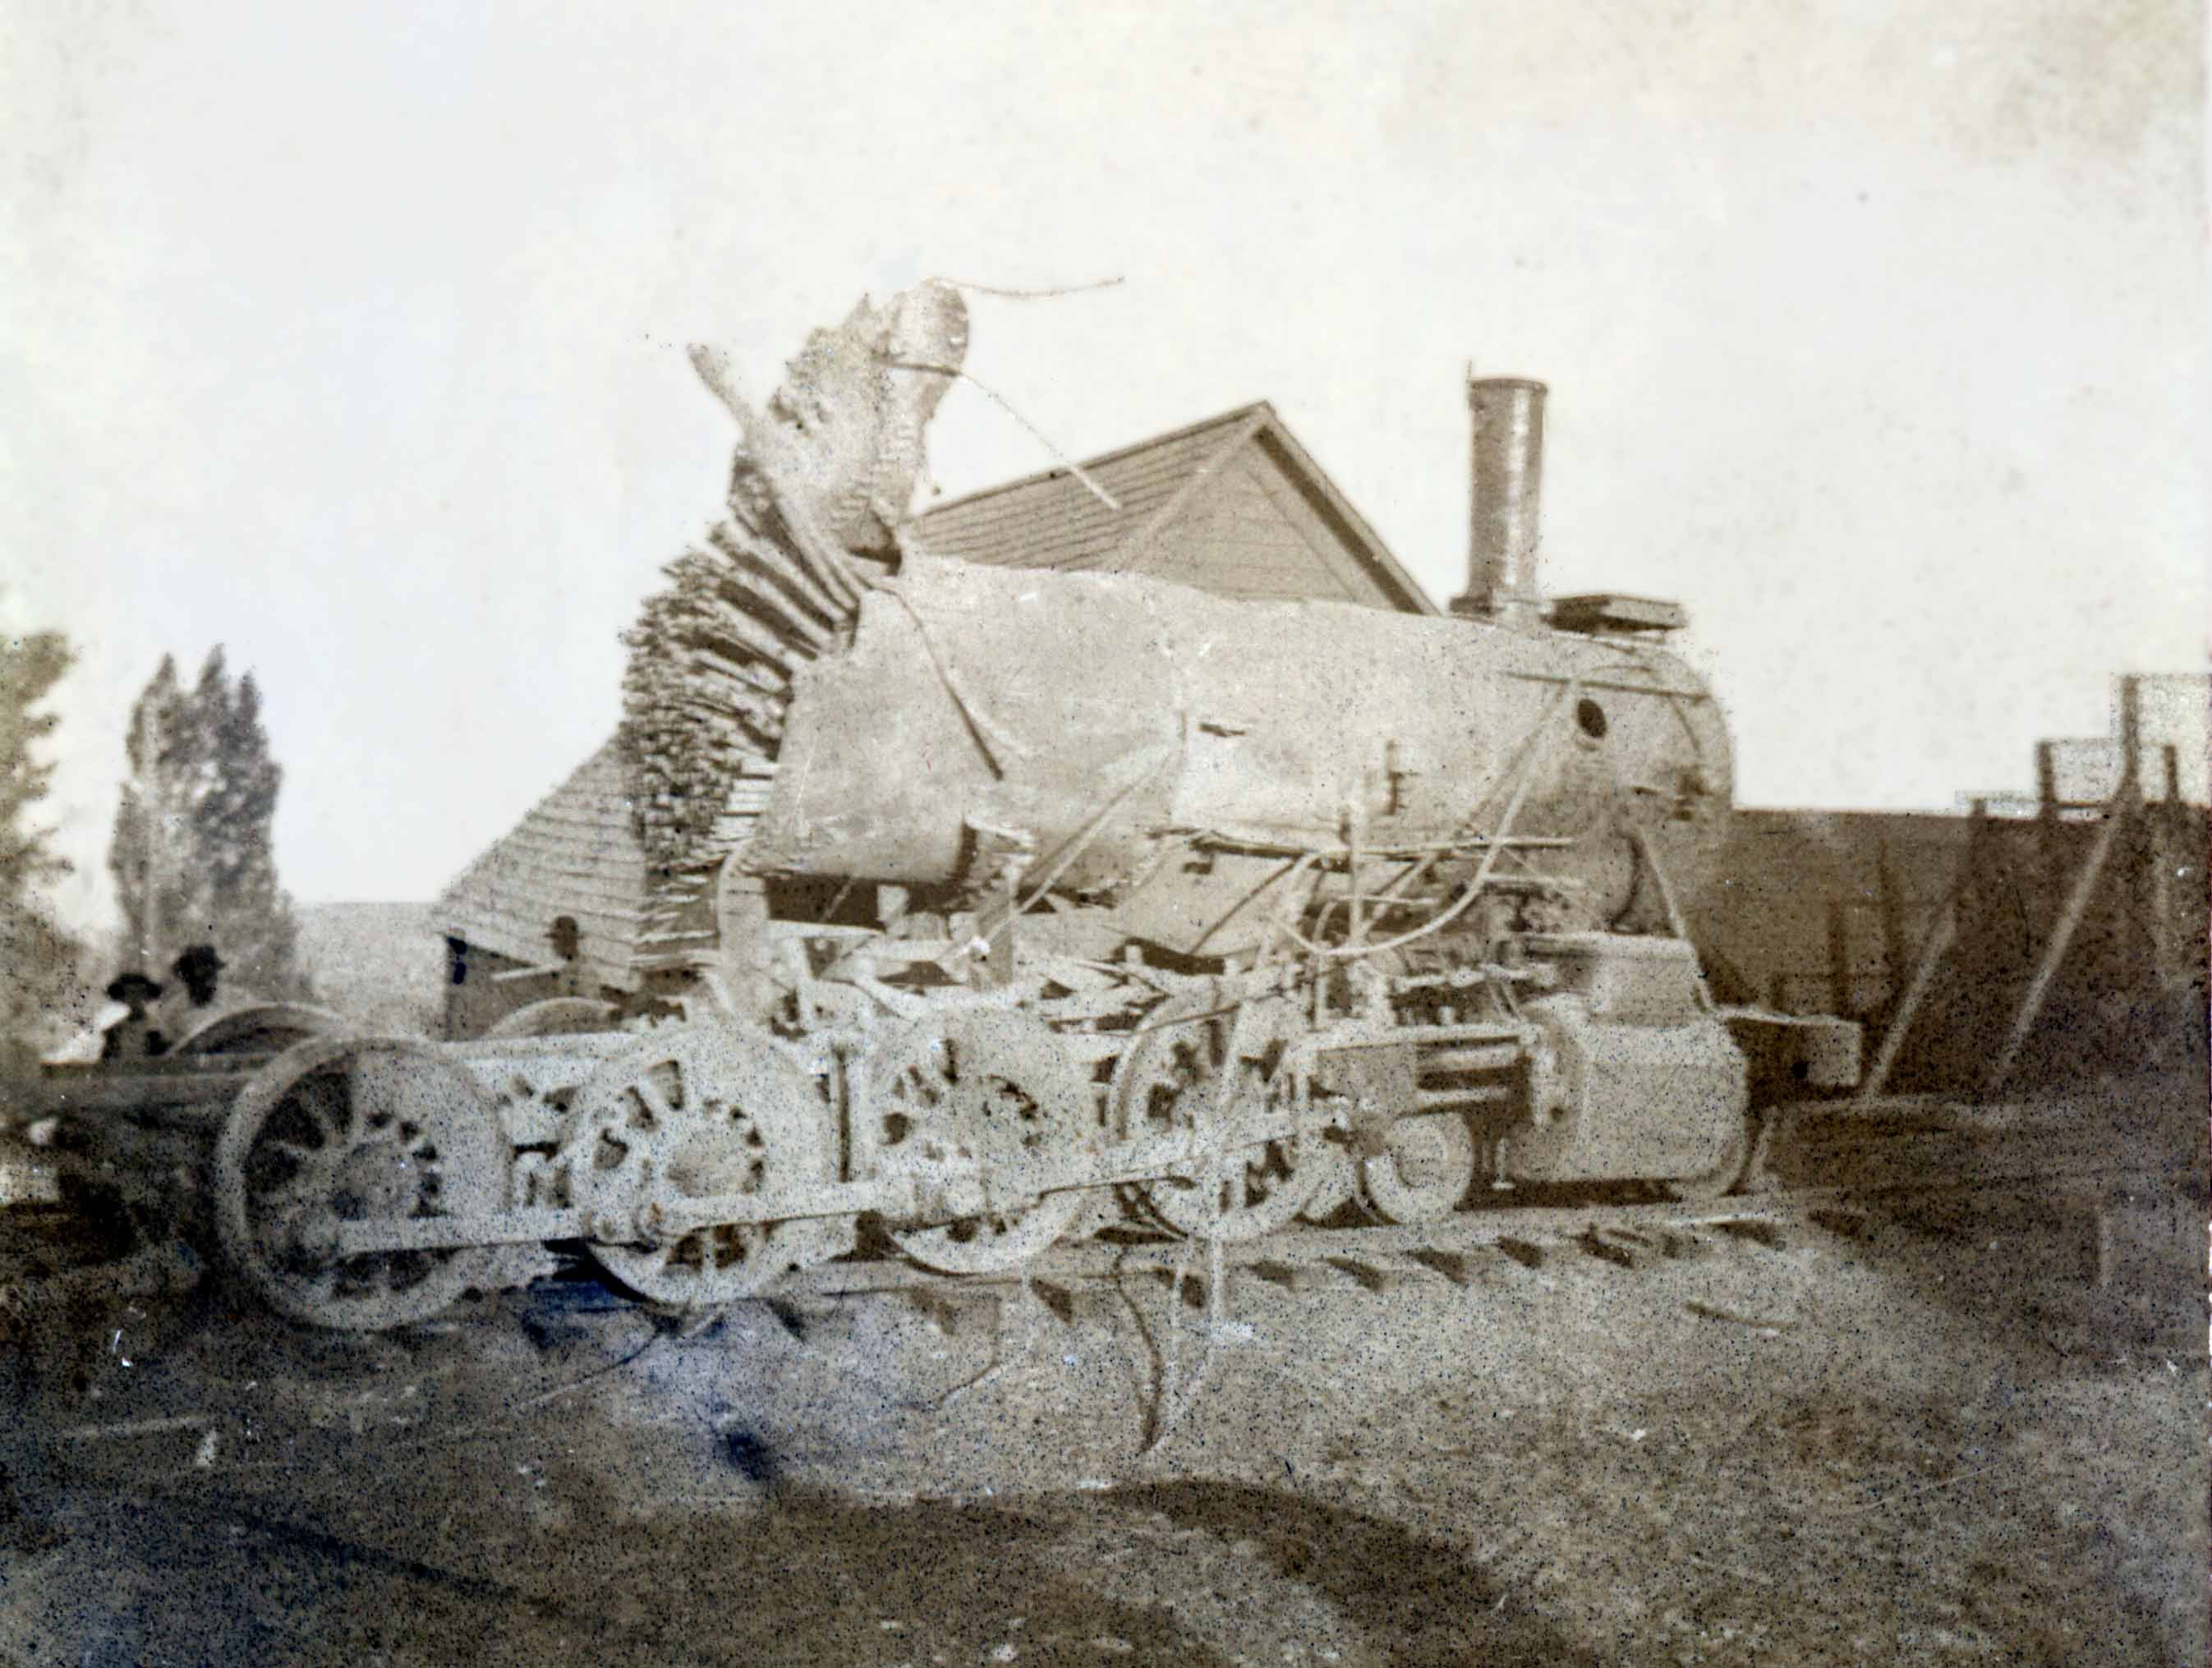 Locomotive that exploded in Dutch Flat, 1898